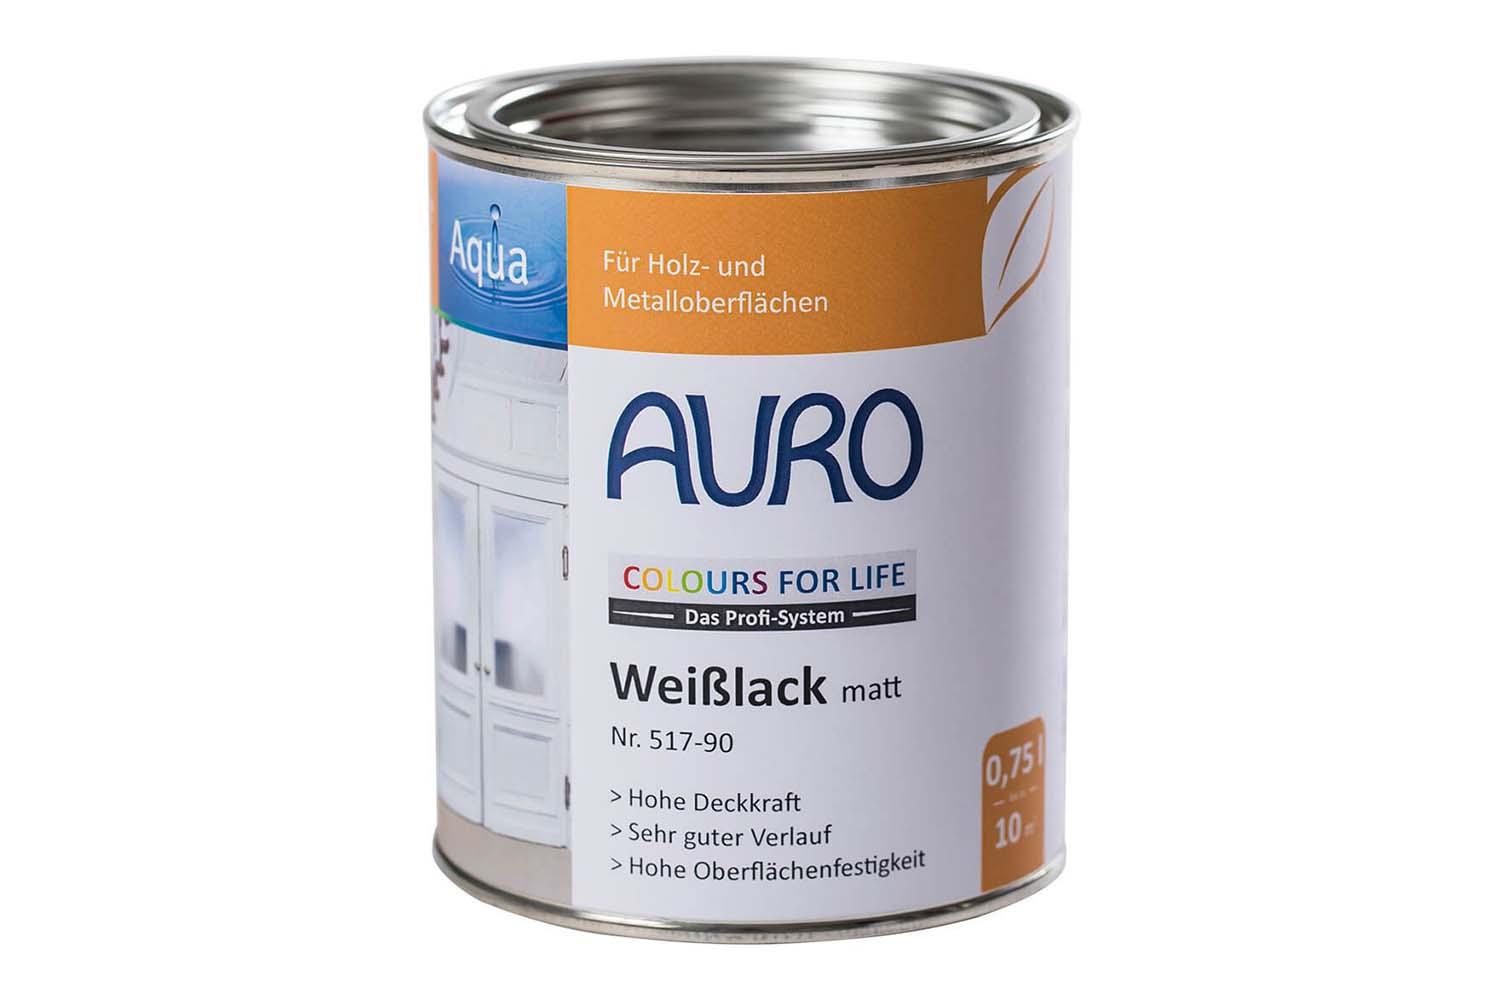 Auro Weißlack matt Nr. 517 Colours for Life